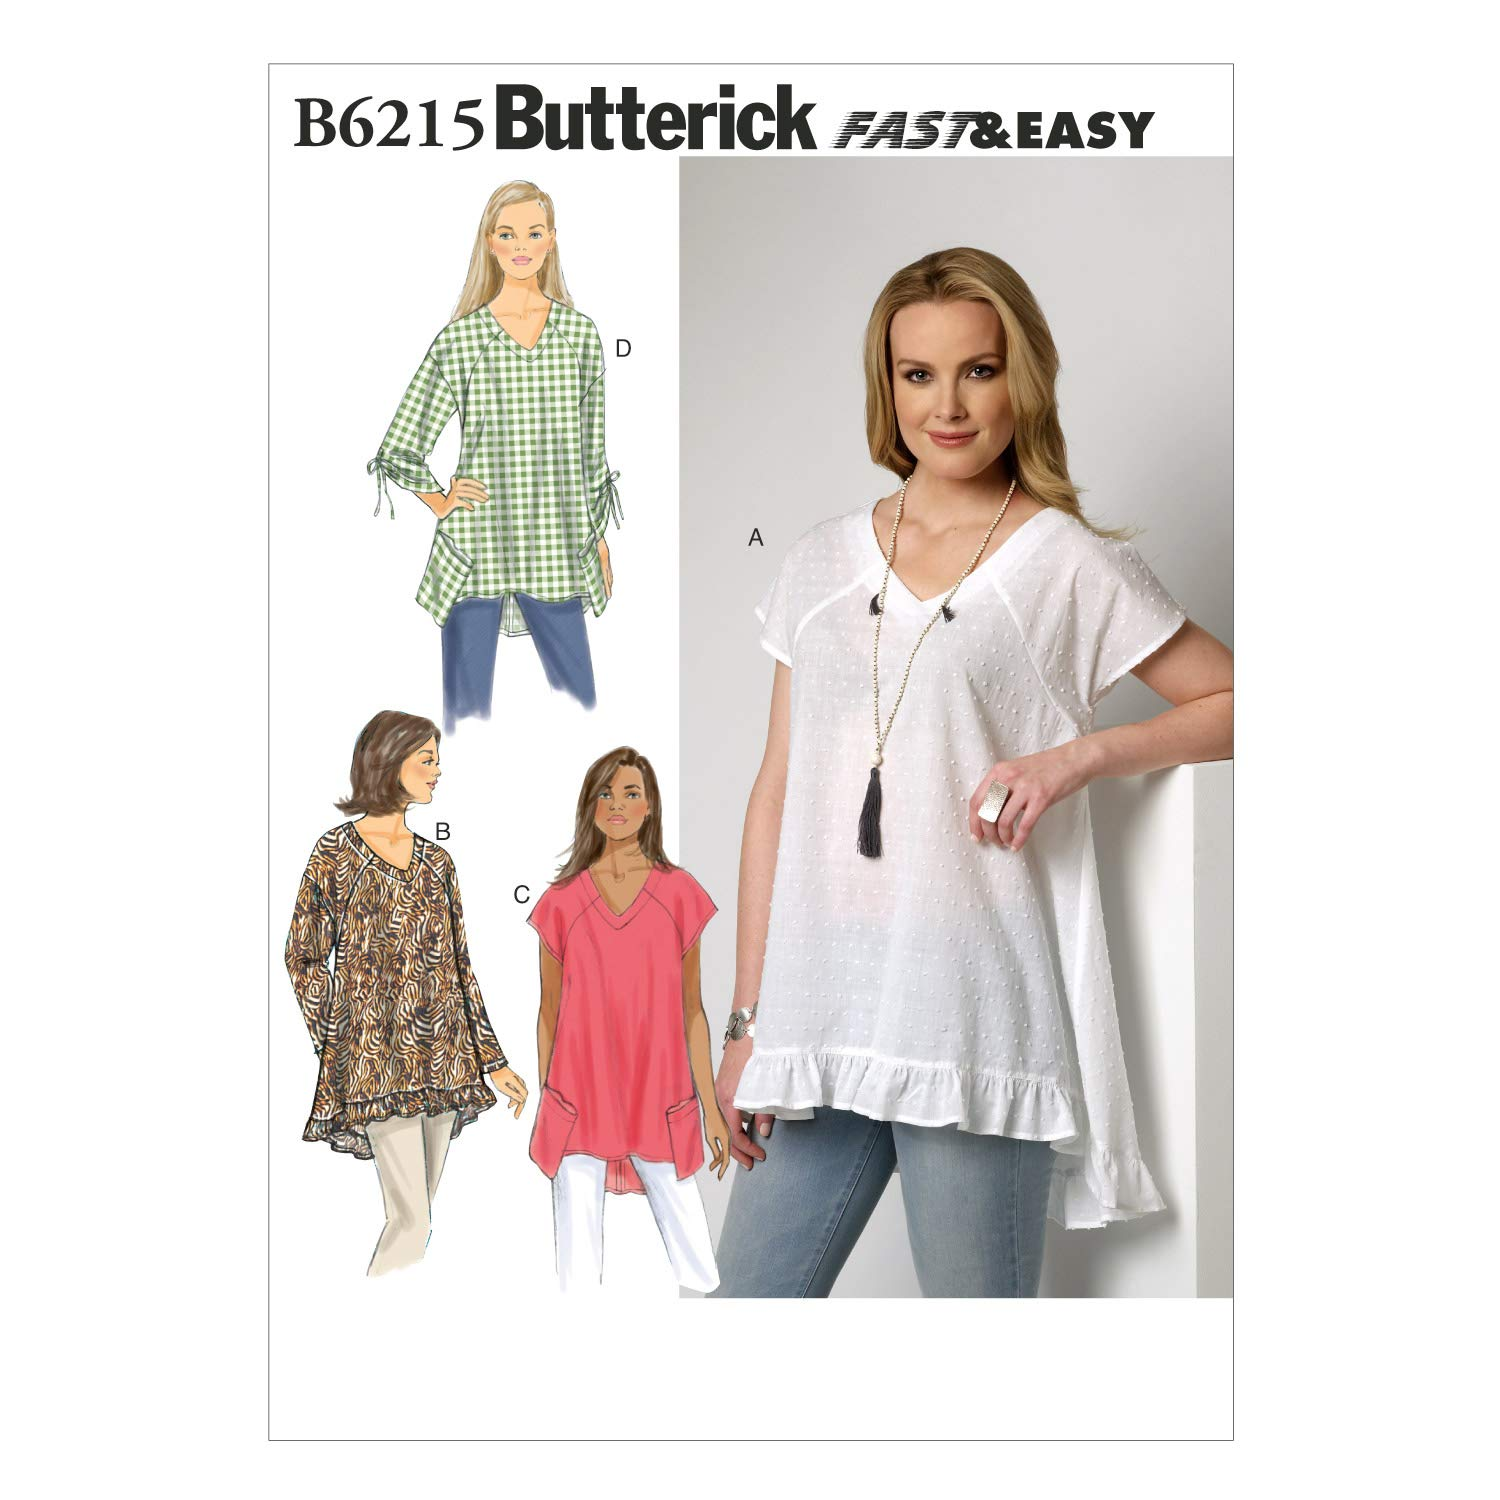 Butterick Patterns B62150Y0 Misses Top, Y (XSM-SML-MED) by BUTTERICK PATTERNS   B00XN81VHC